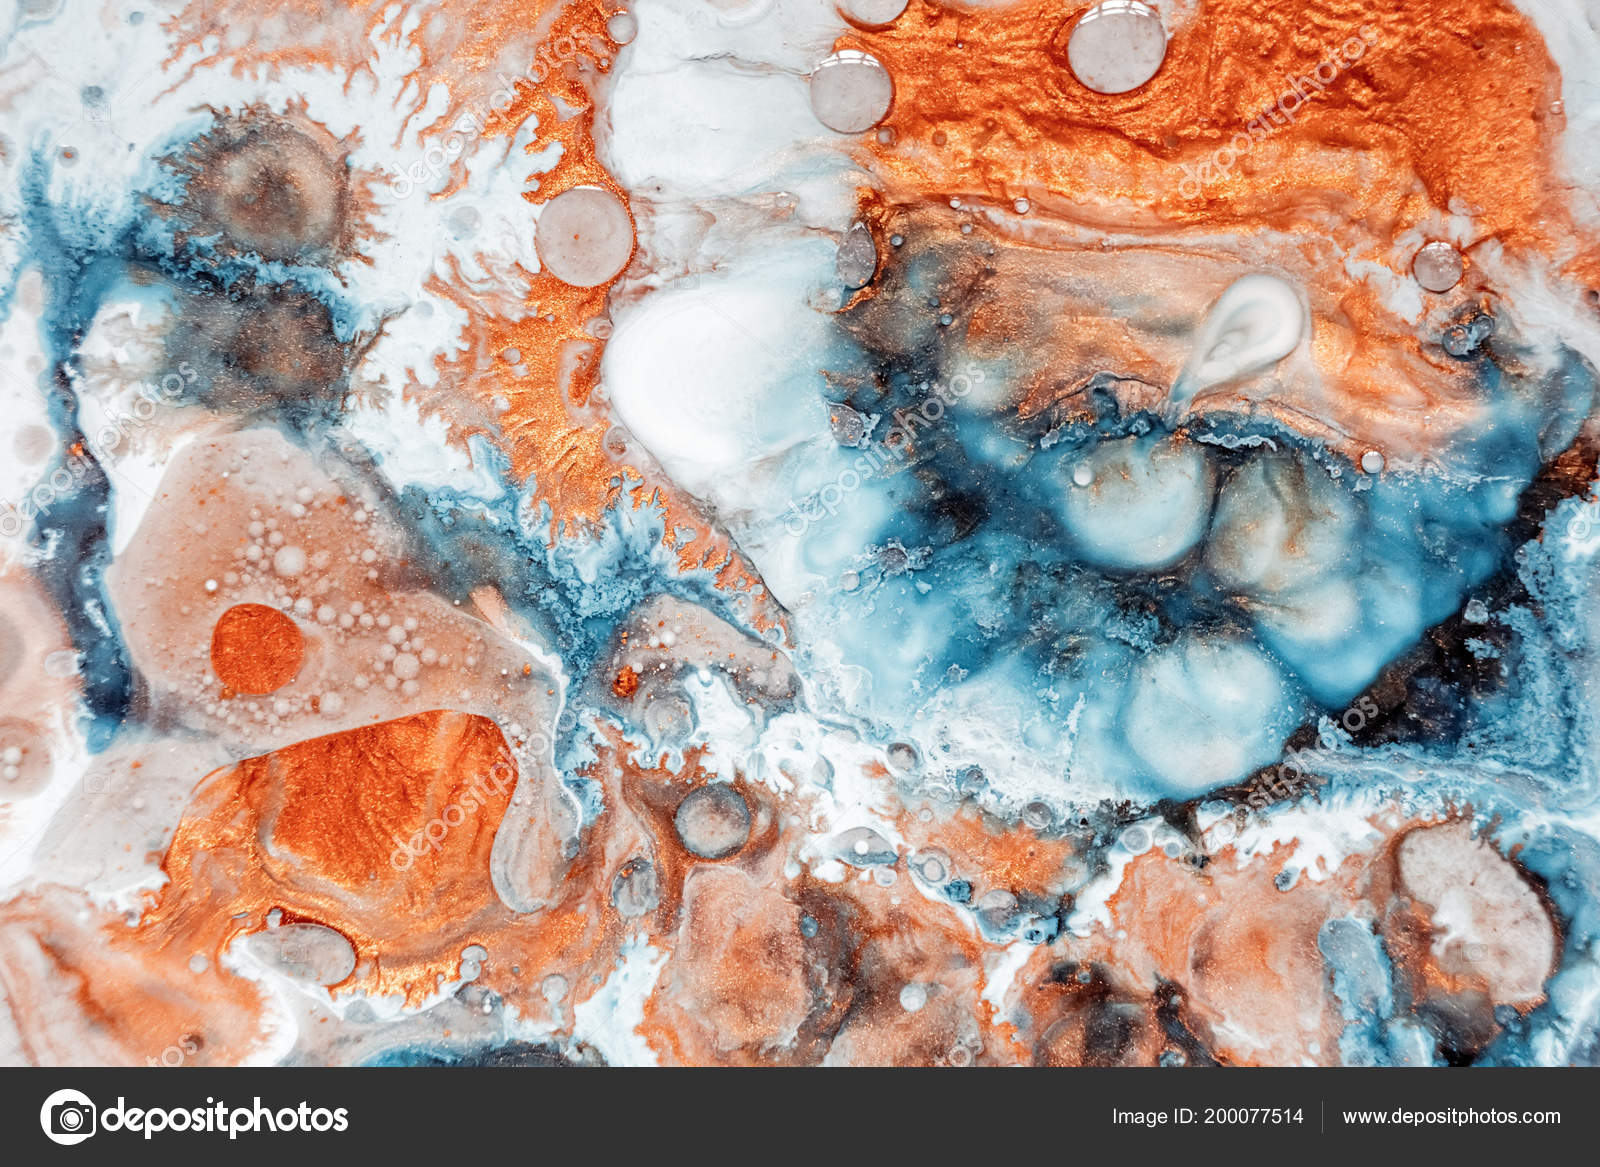 Wallpapers Abstract Paint Abstract Painting Can Be Used As A Trendy Background For Wallpapers Posters Cards Invitations Websites Modern Artwork Marble Effect Painting Mixed Blue Orange And White Paints Stock